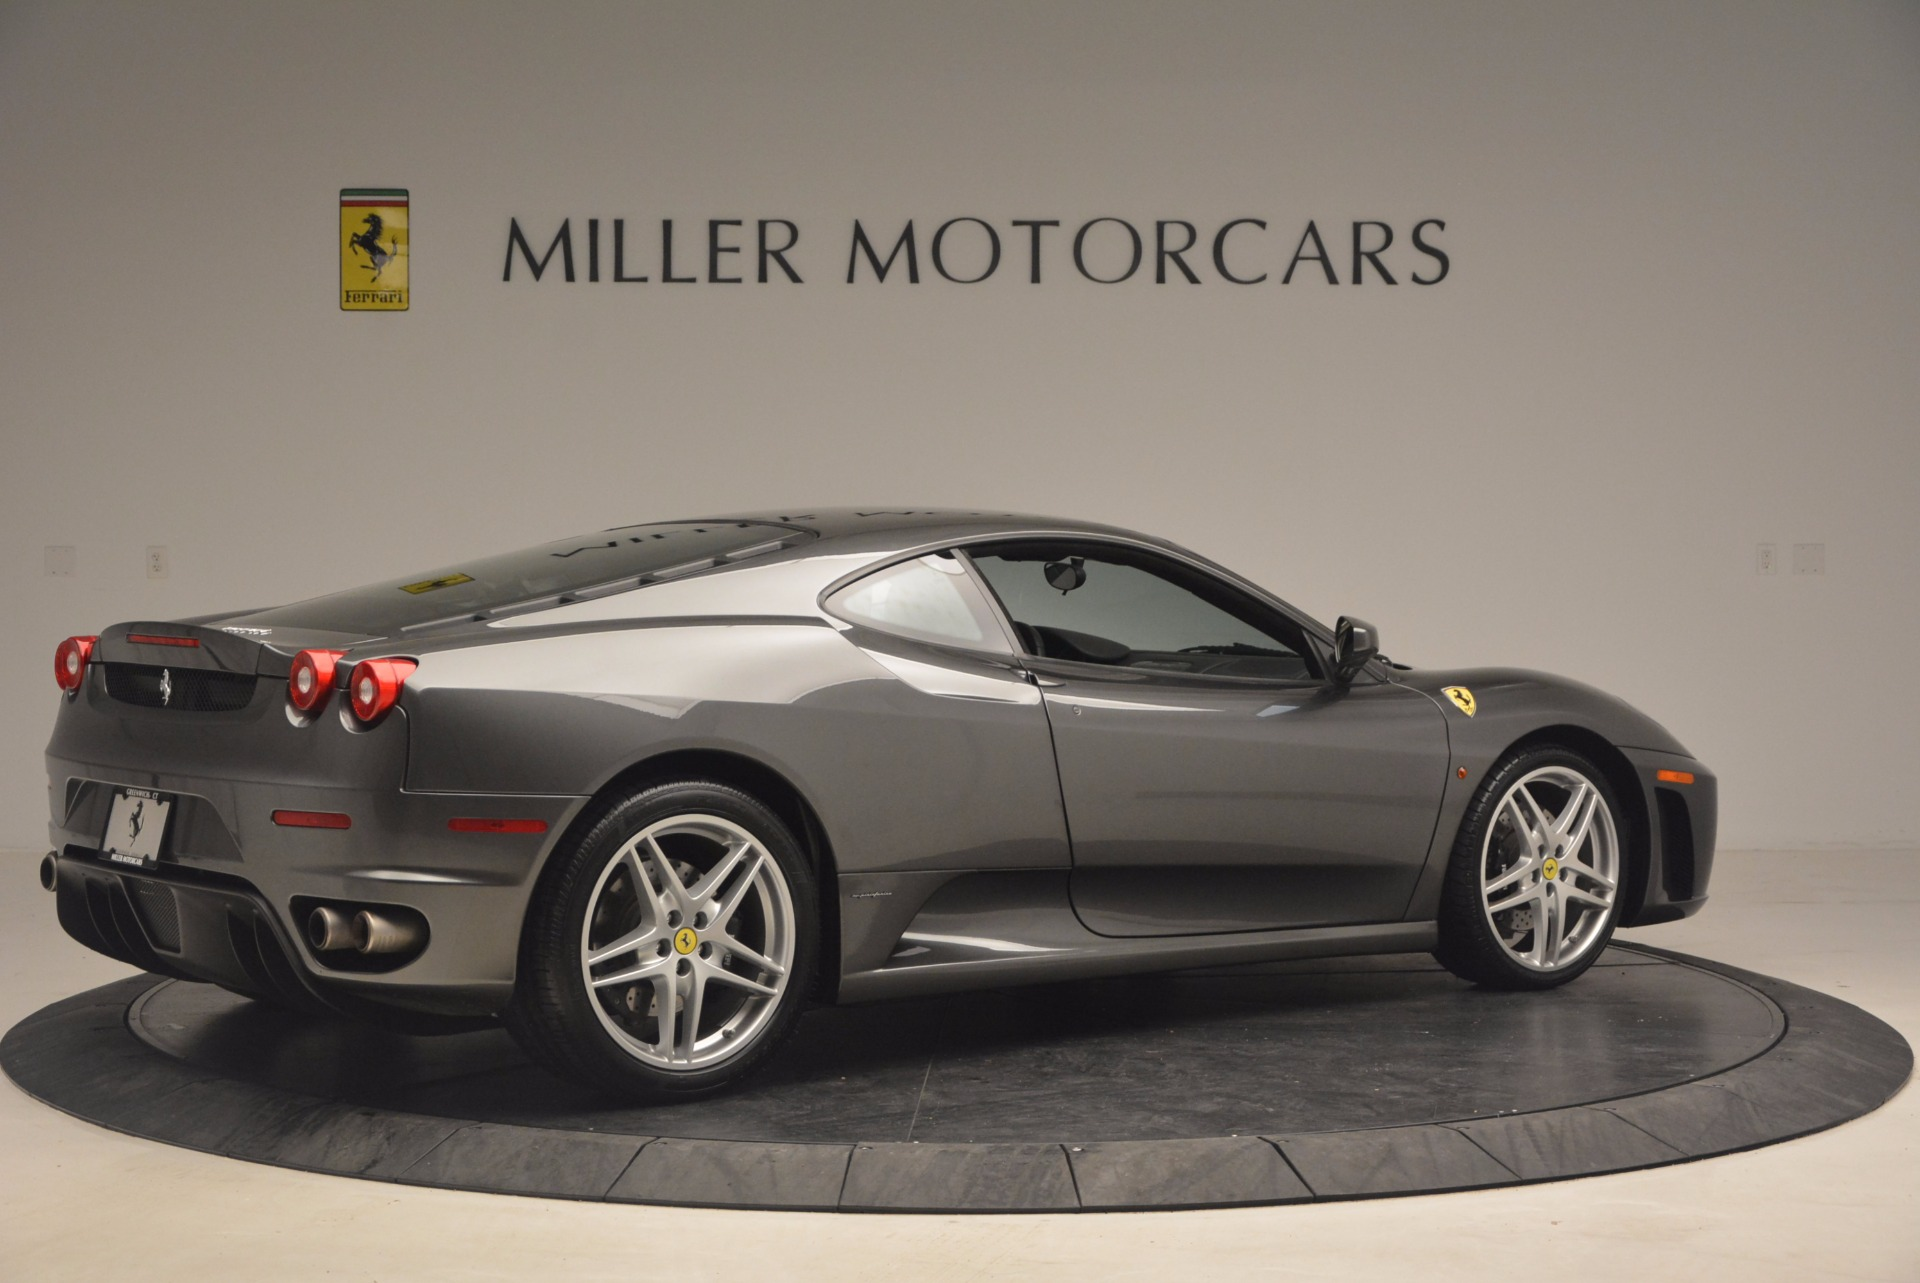 Used 2005 Ferrari F430 6-Speed Manual For Sale In Greenwich, CT 1286_p8